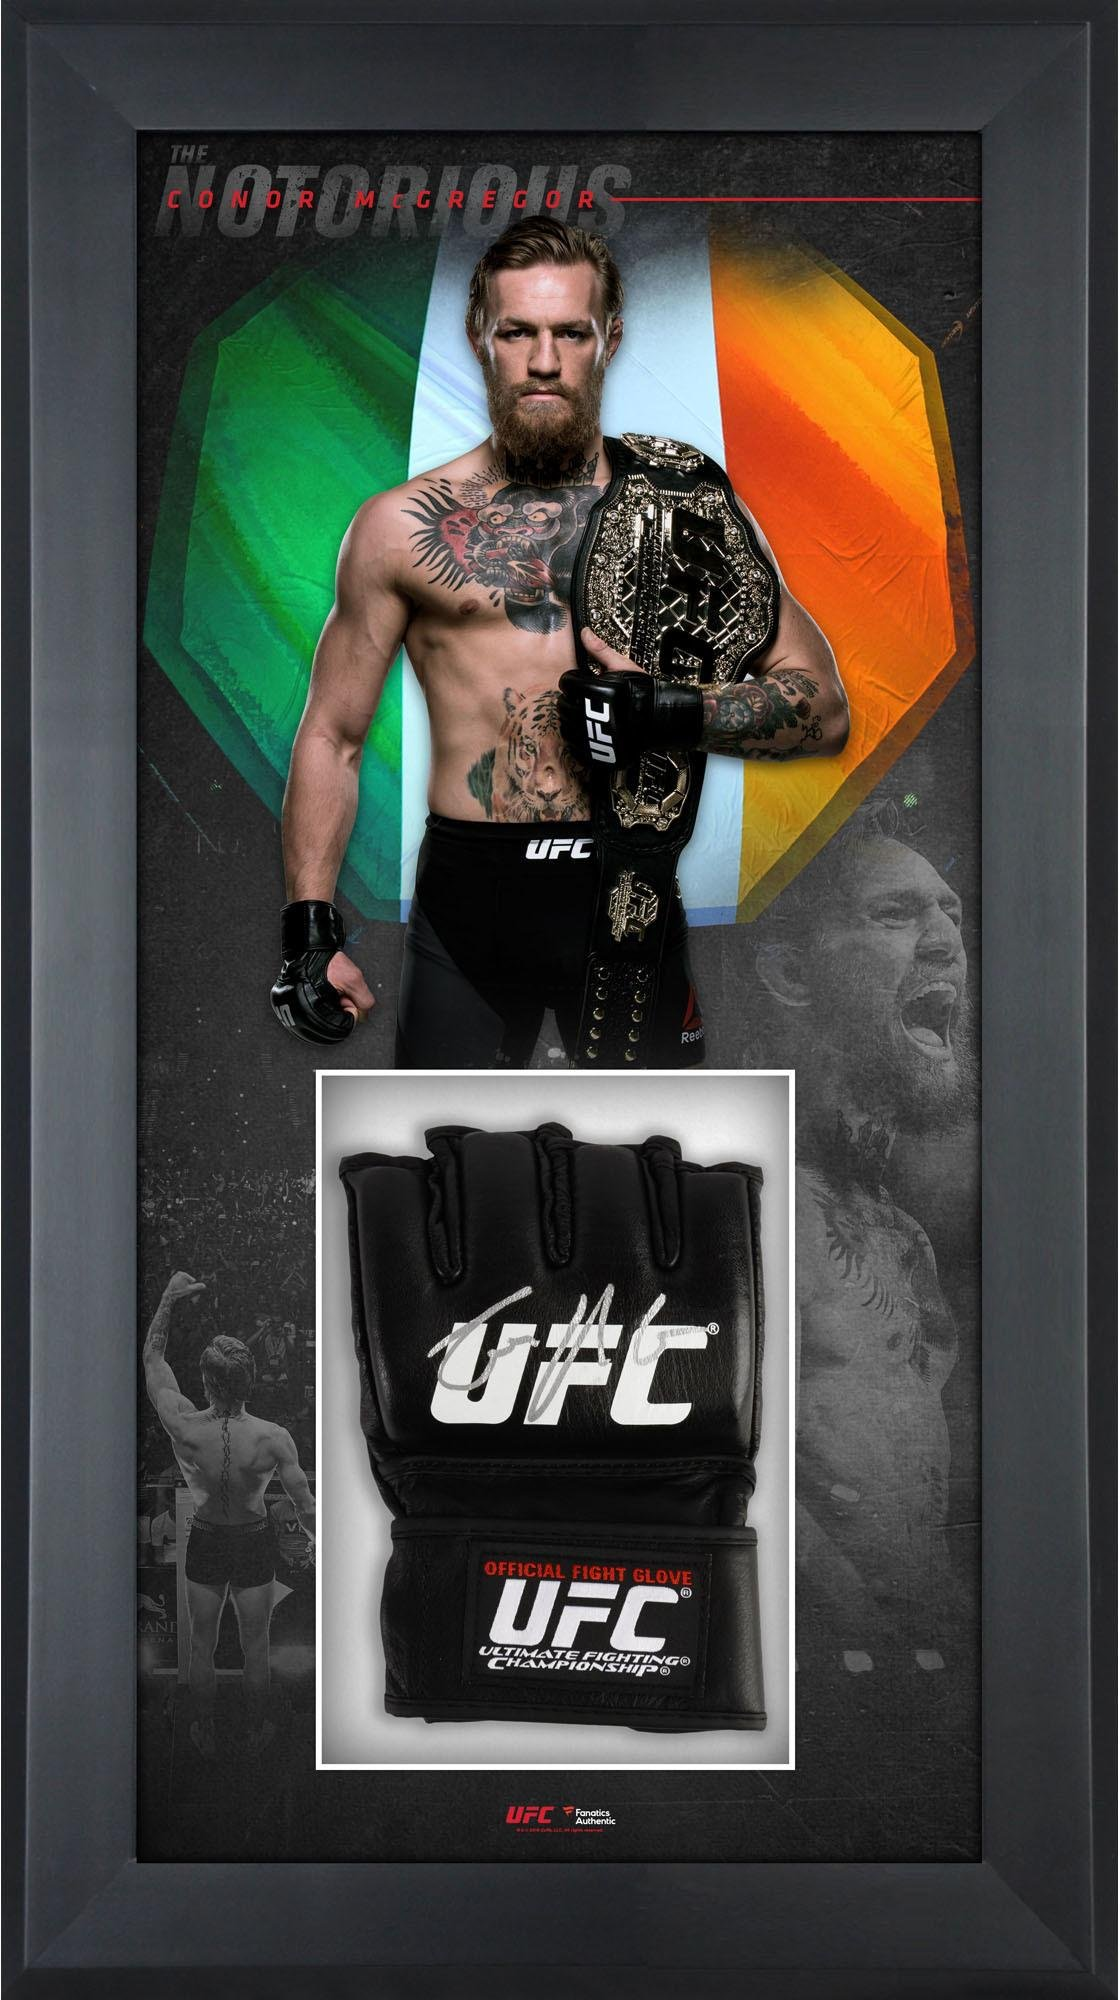 Conor McGregor Ultimate Fighting Championship Framed Autographed Fight  Model Glove Shadowbox - Fanatics Authentic Certified 192db0d0a